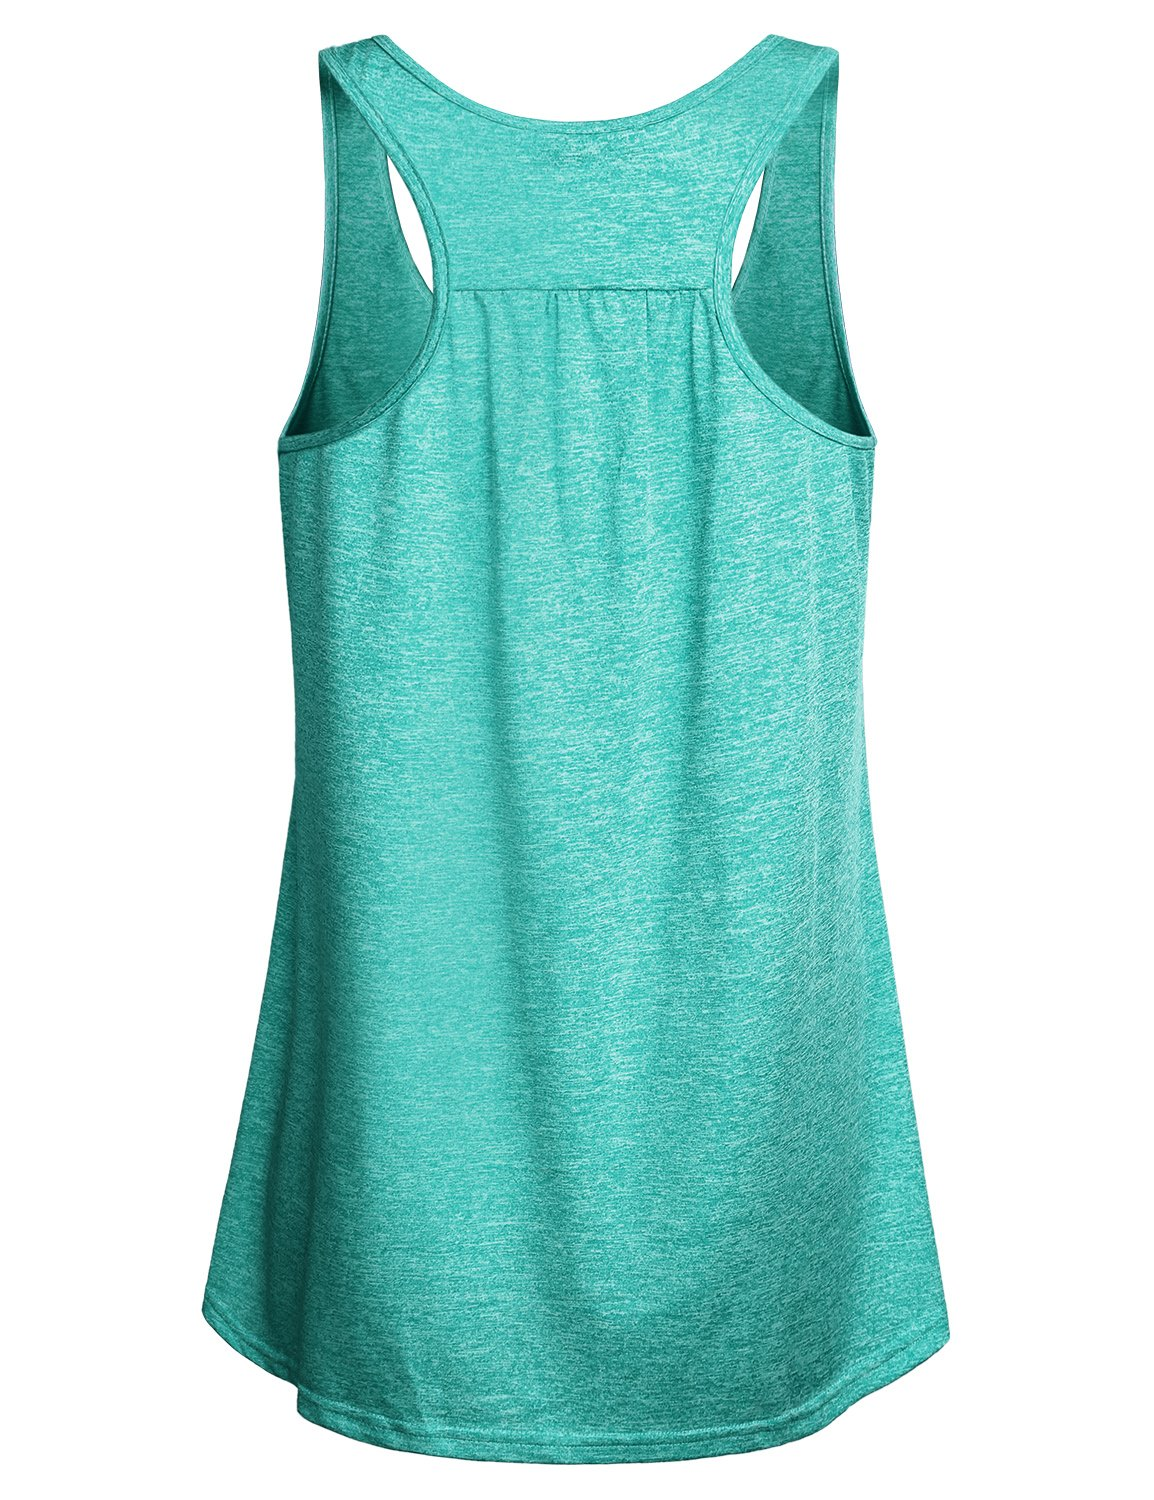 Miusey Gym Tops Racerback Design Round Neck Sleeveless Army Camouflage Yoga Sports Stretchy Lightweight Comfy Breathable Cool Workout Tank Green M by Miusey (Image #2)